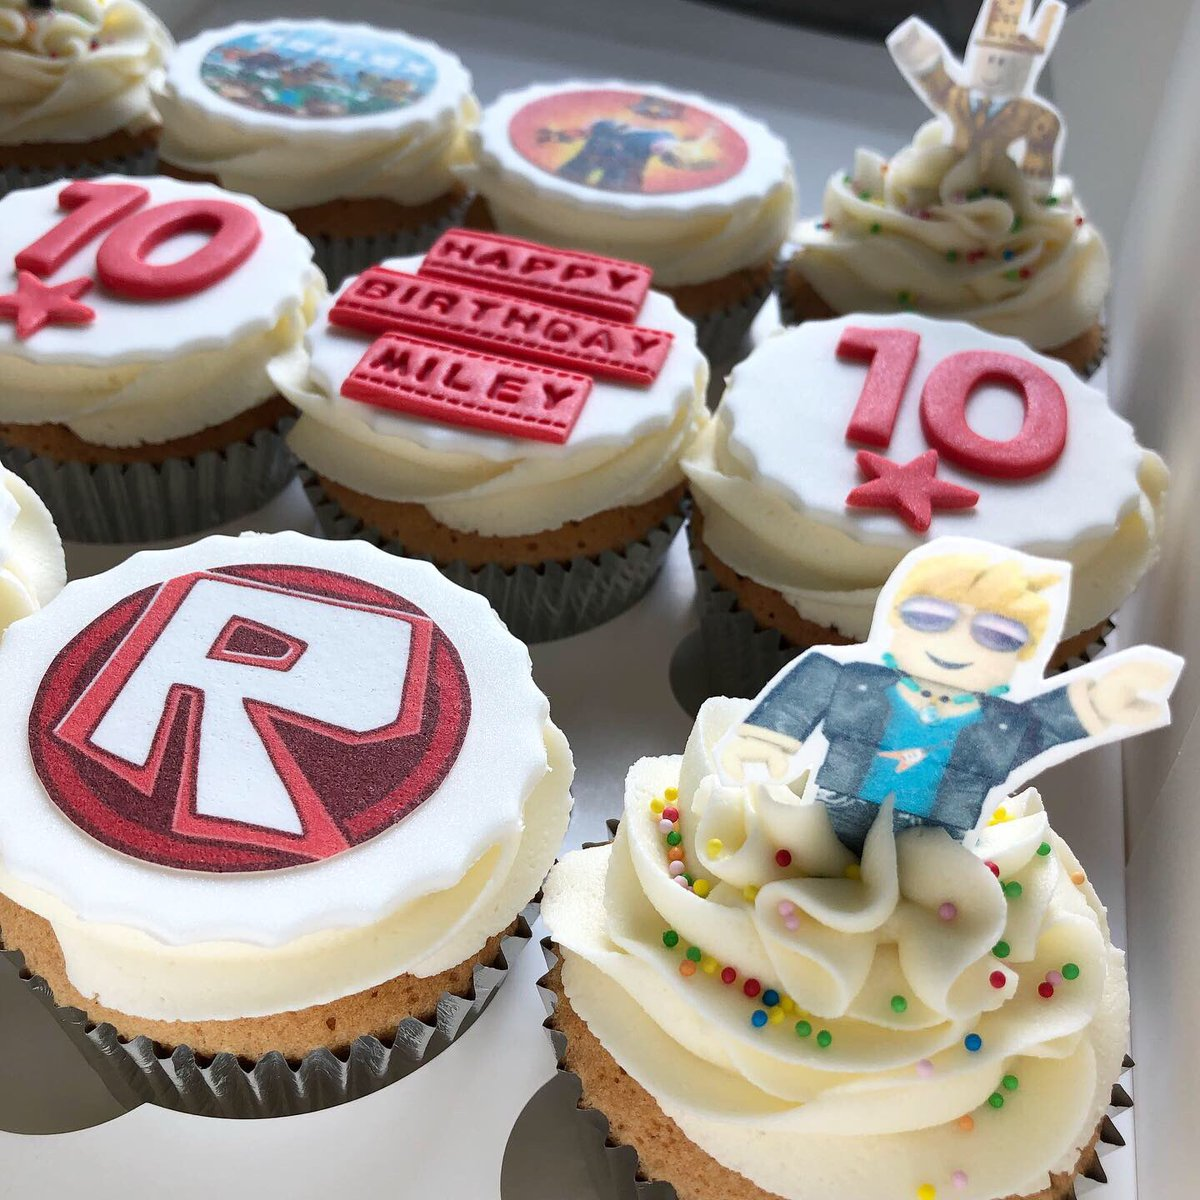 Roblox Birthday Cupcakes Saddleworthbakehouse On Twitter Good Afternoon Roblox Themed Cupcakes For Birthday Girl Miley Goodafternoon Roblox Gaming Robloxcupcakes Cupcakes Birthdaycupcakes Edibleimages Happybirthday 10thbirthday Saddleworth Oldham Baking Https